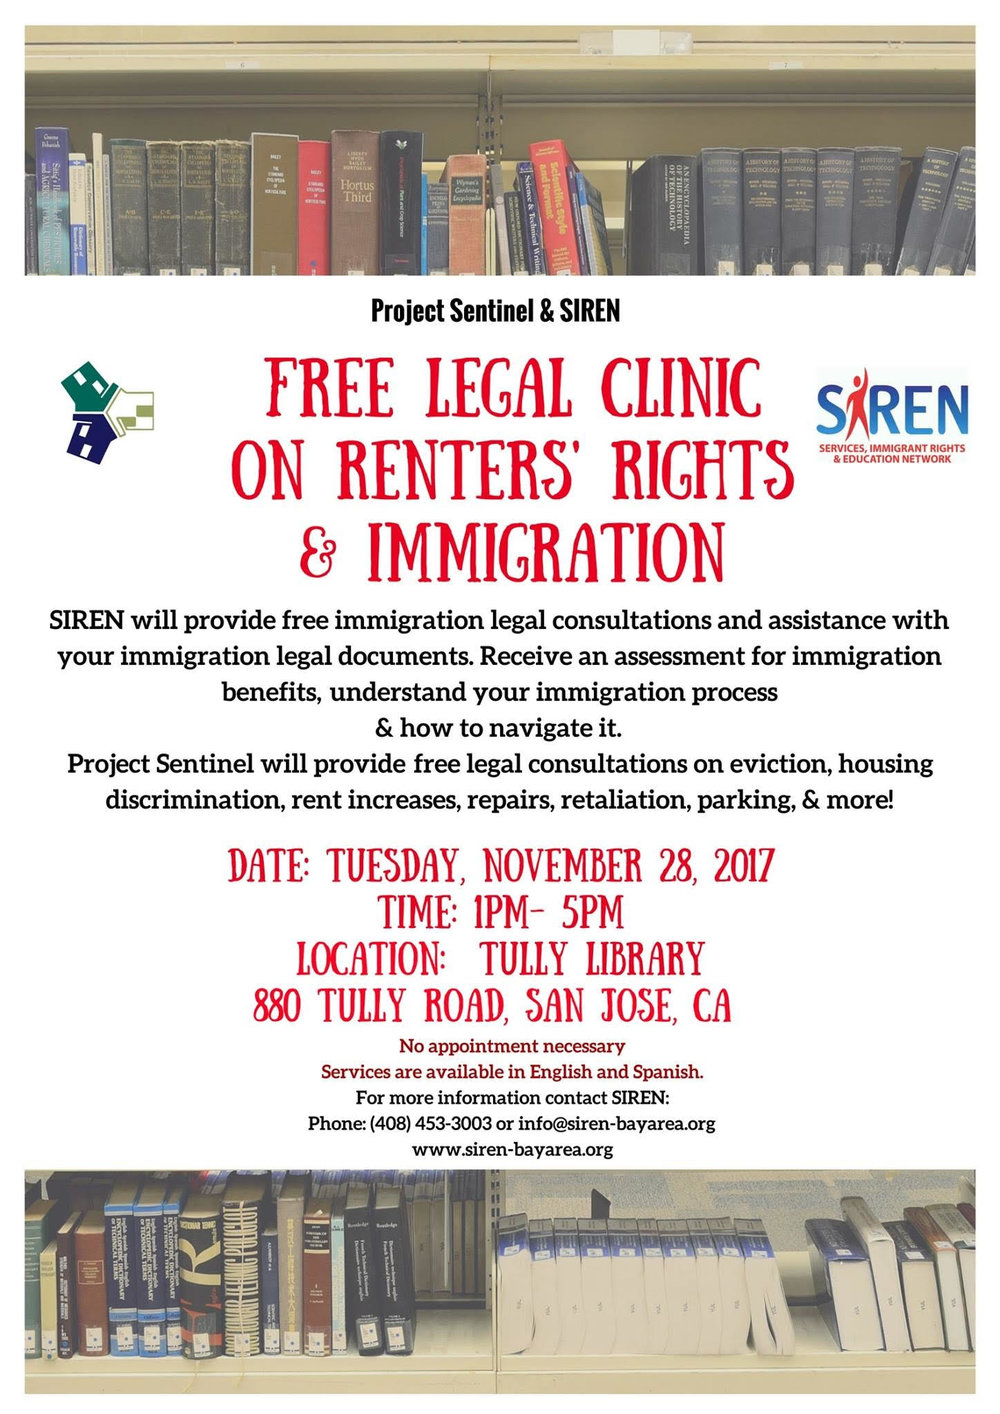 SIREN-Tully Library Free Legal Clinic on Renter's Rights & Immigration .jpg